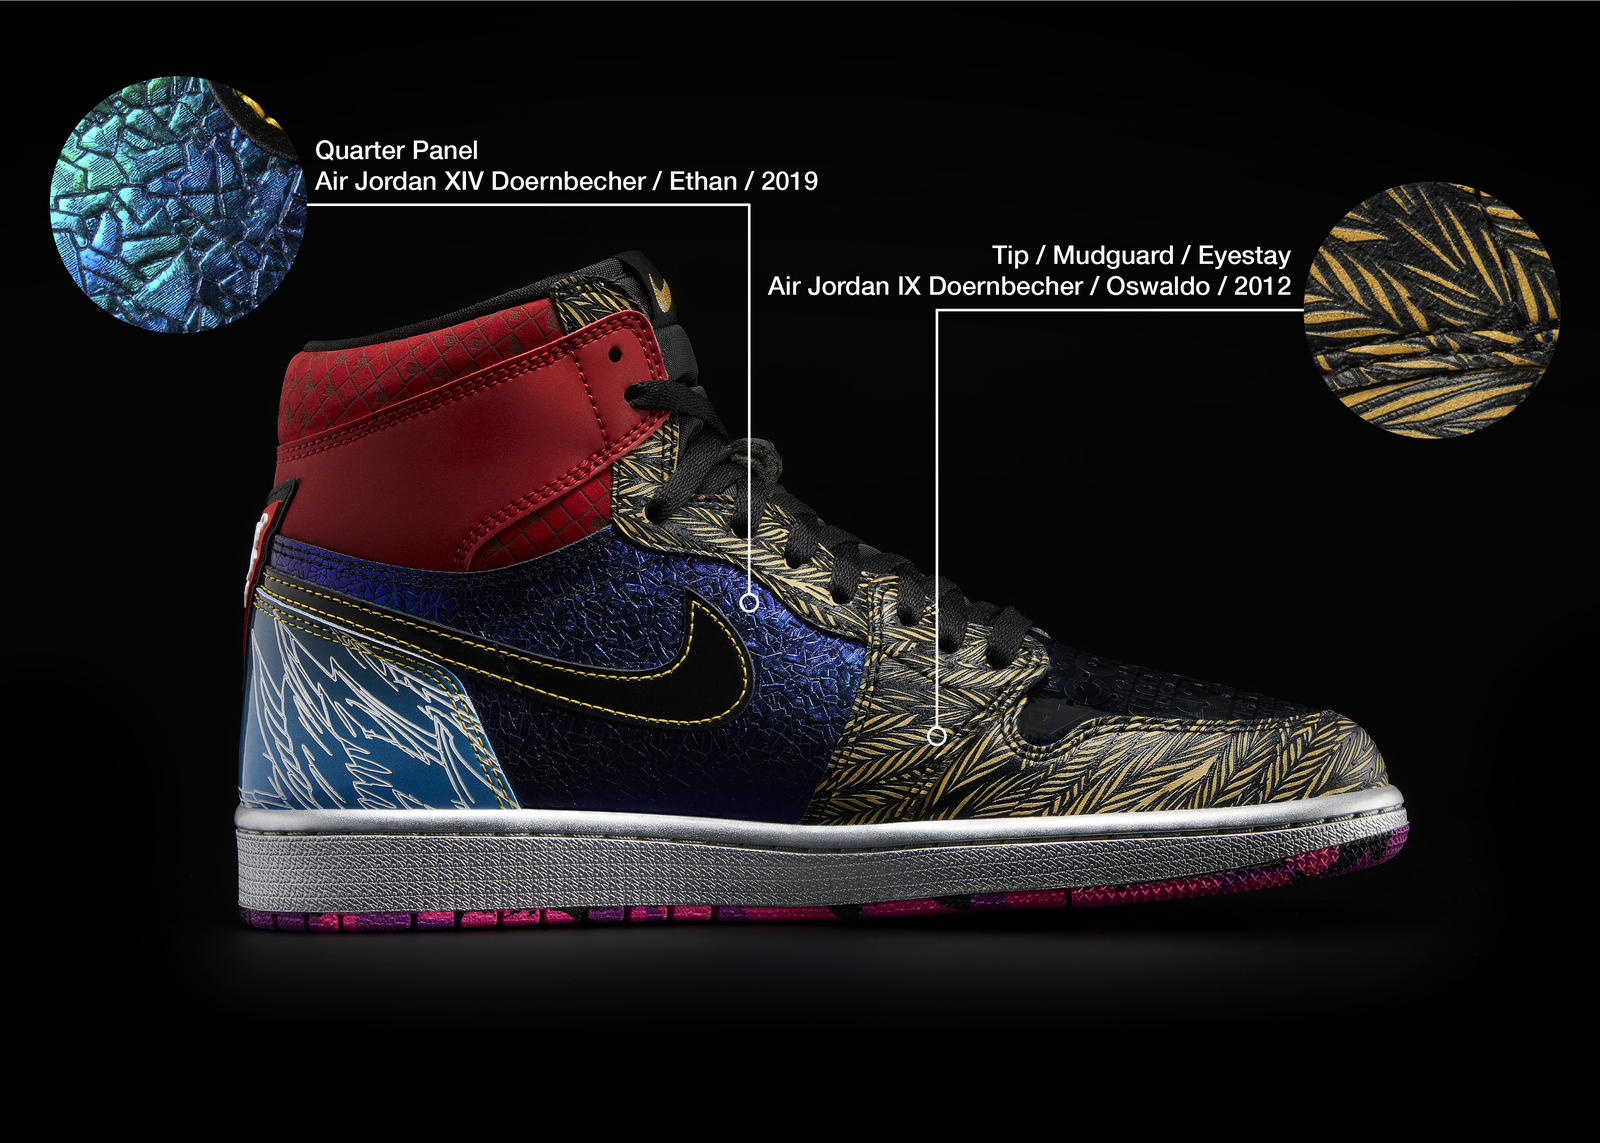 Nike Doernbecher Freestyle 2021 Air Jordan I What The Official Images Release Date 5